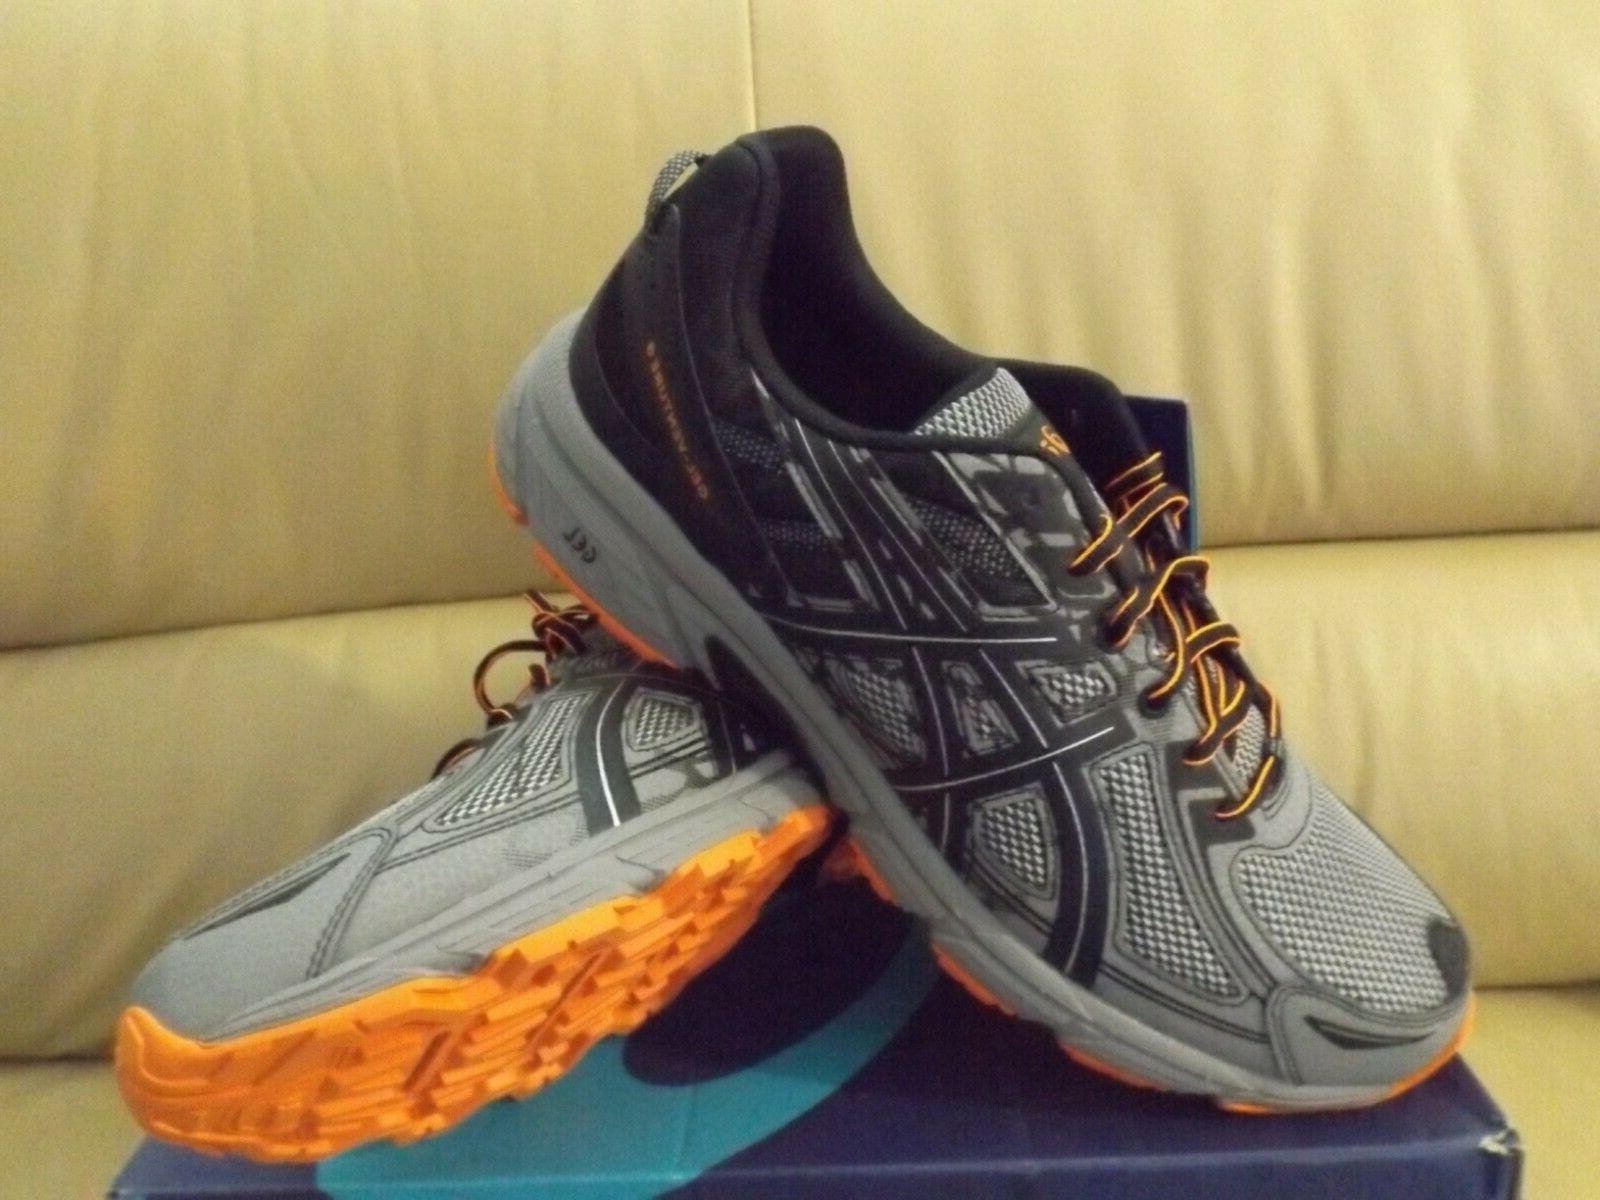 ASICS Size 14 Shoes Frost